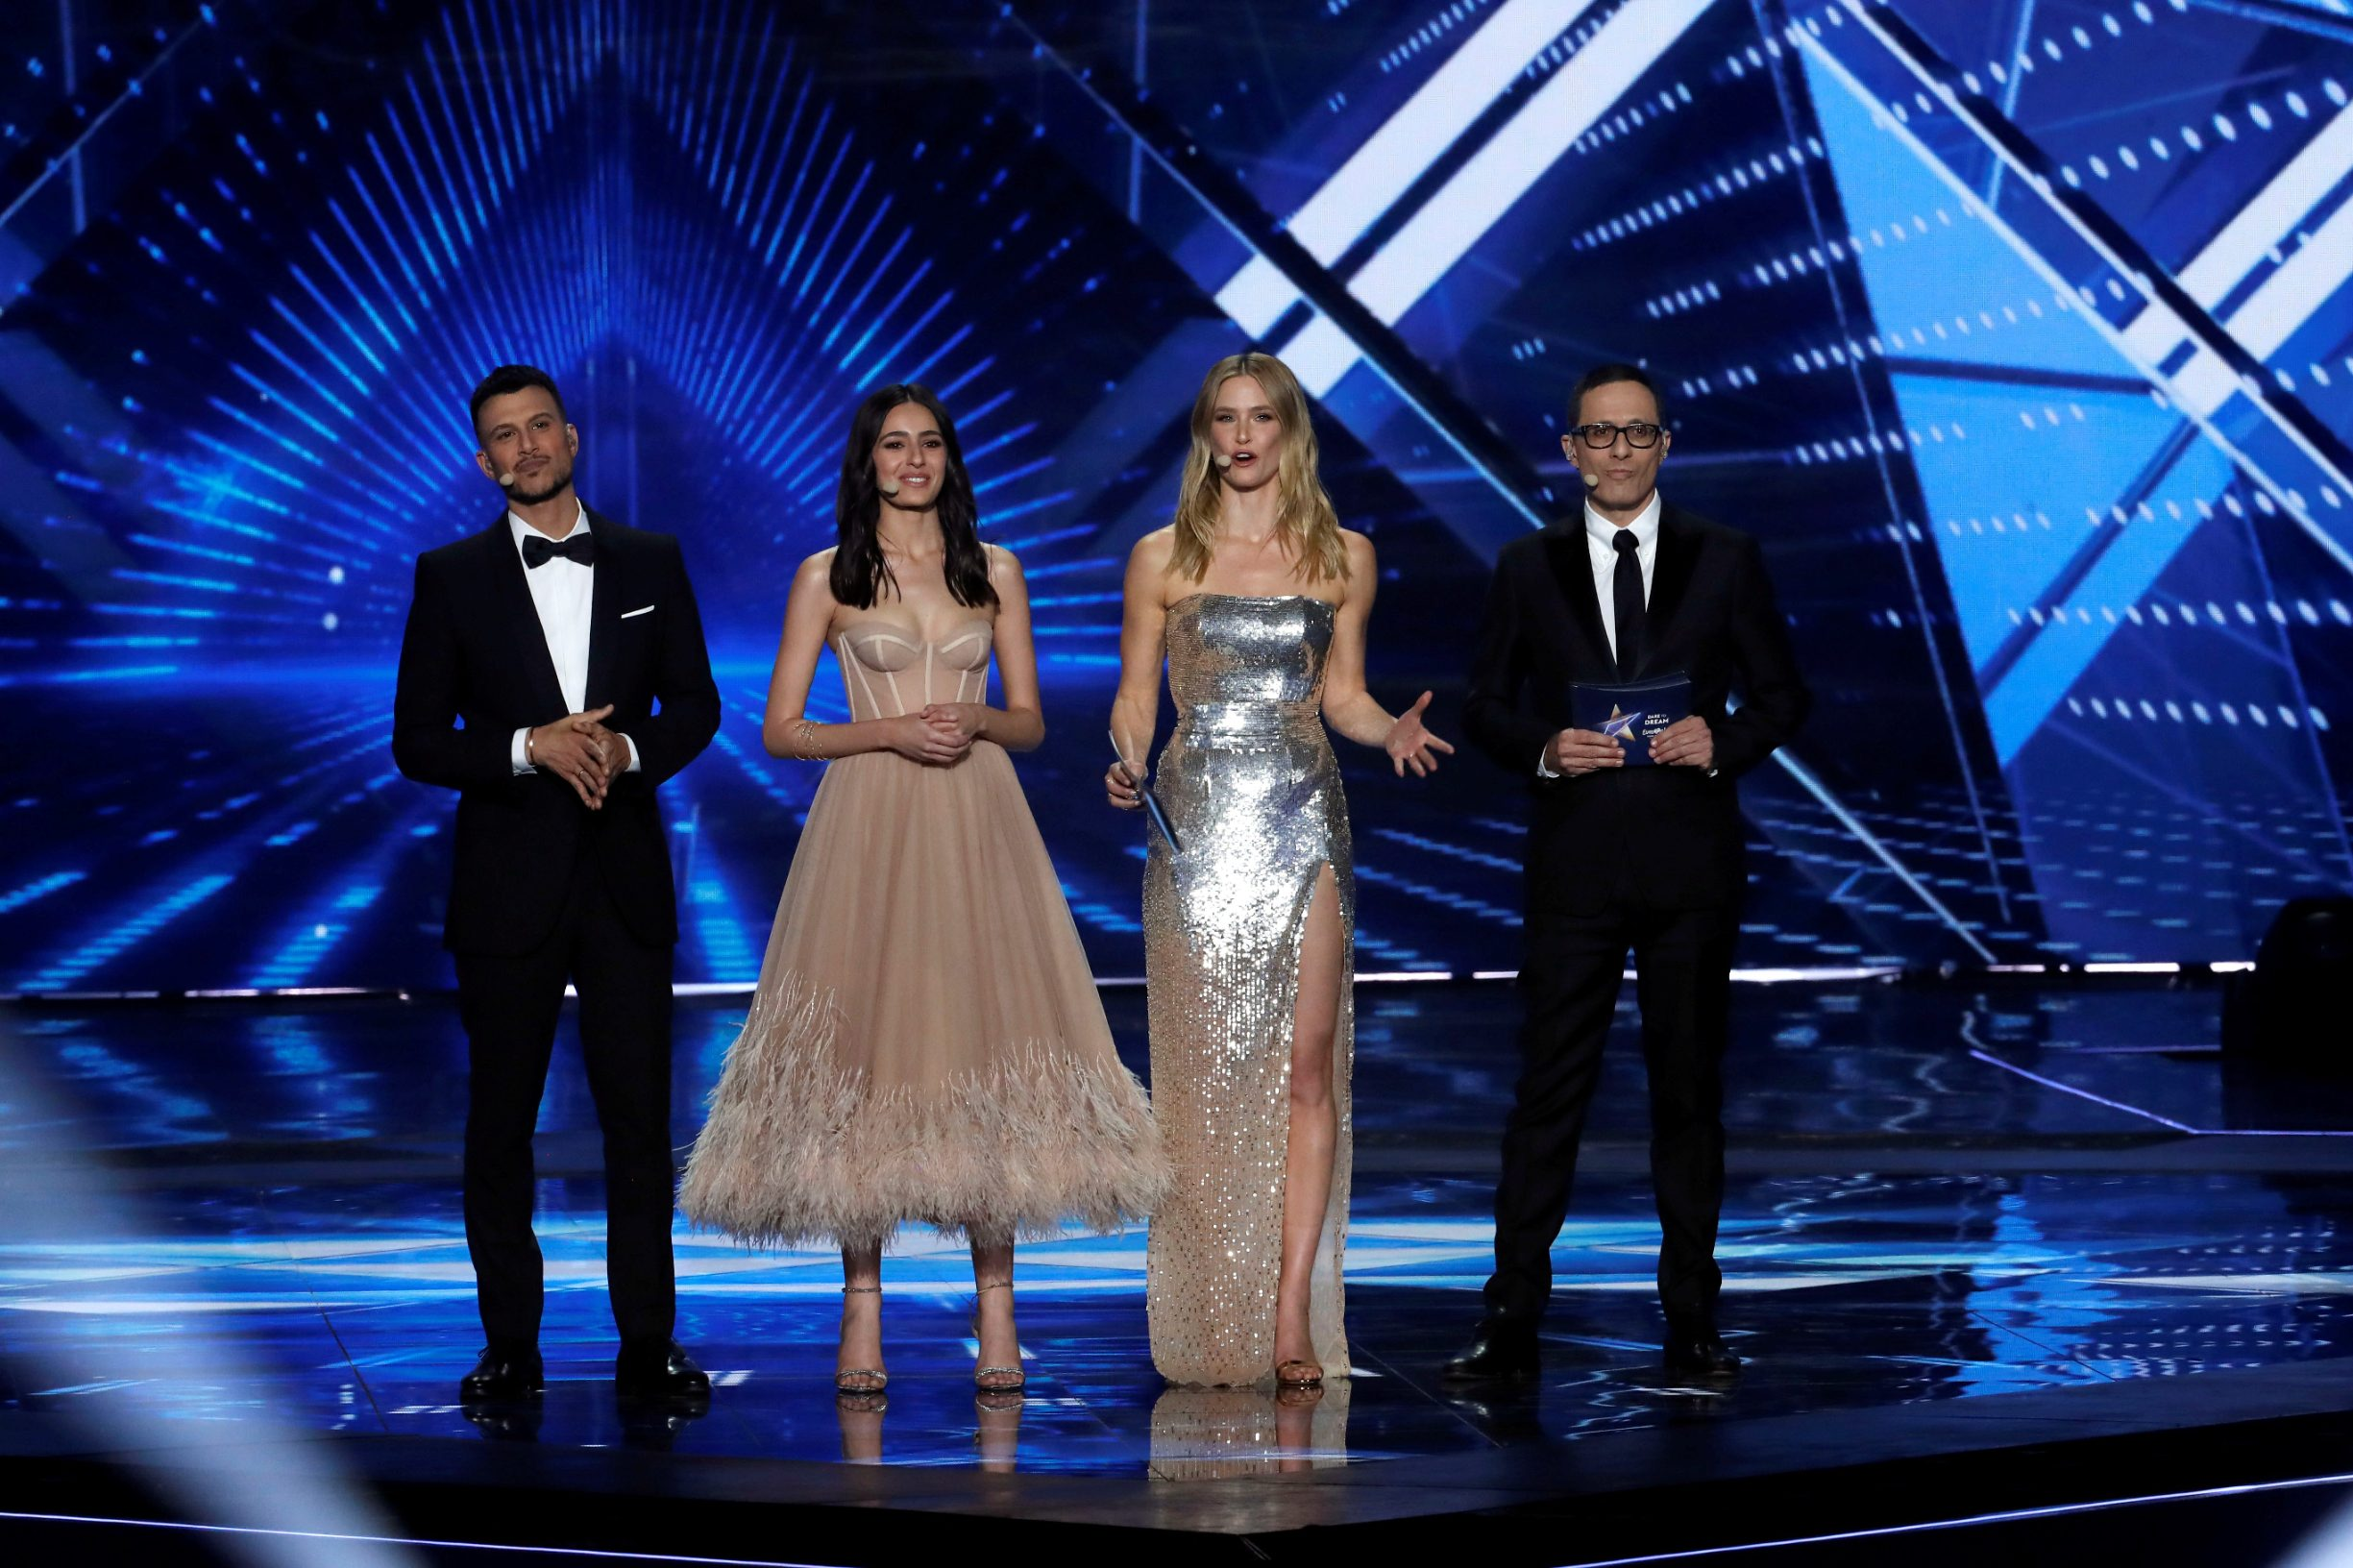 Hosts of the 2019 Eurovision Song Contest, Bar Refaeli, Erez Tal, Assi Azar and Lucy Ayoub stand on stage during the Grand Final of the contest in Tel Aviv, Israel May 18, 2019. REUTERS/Ronen Zvulun